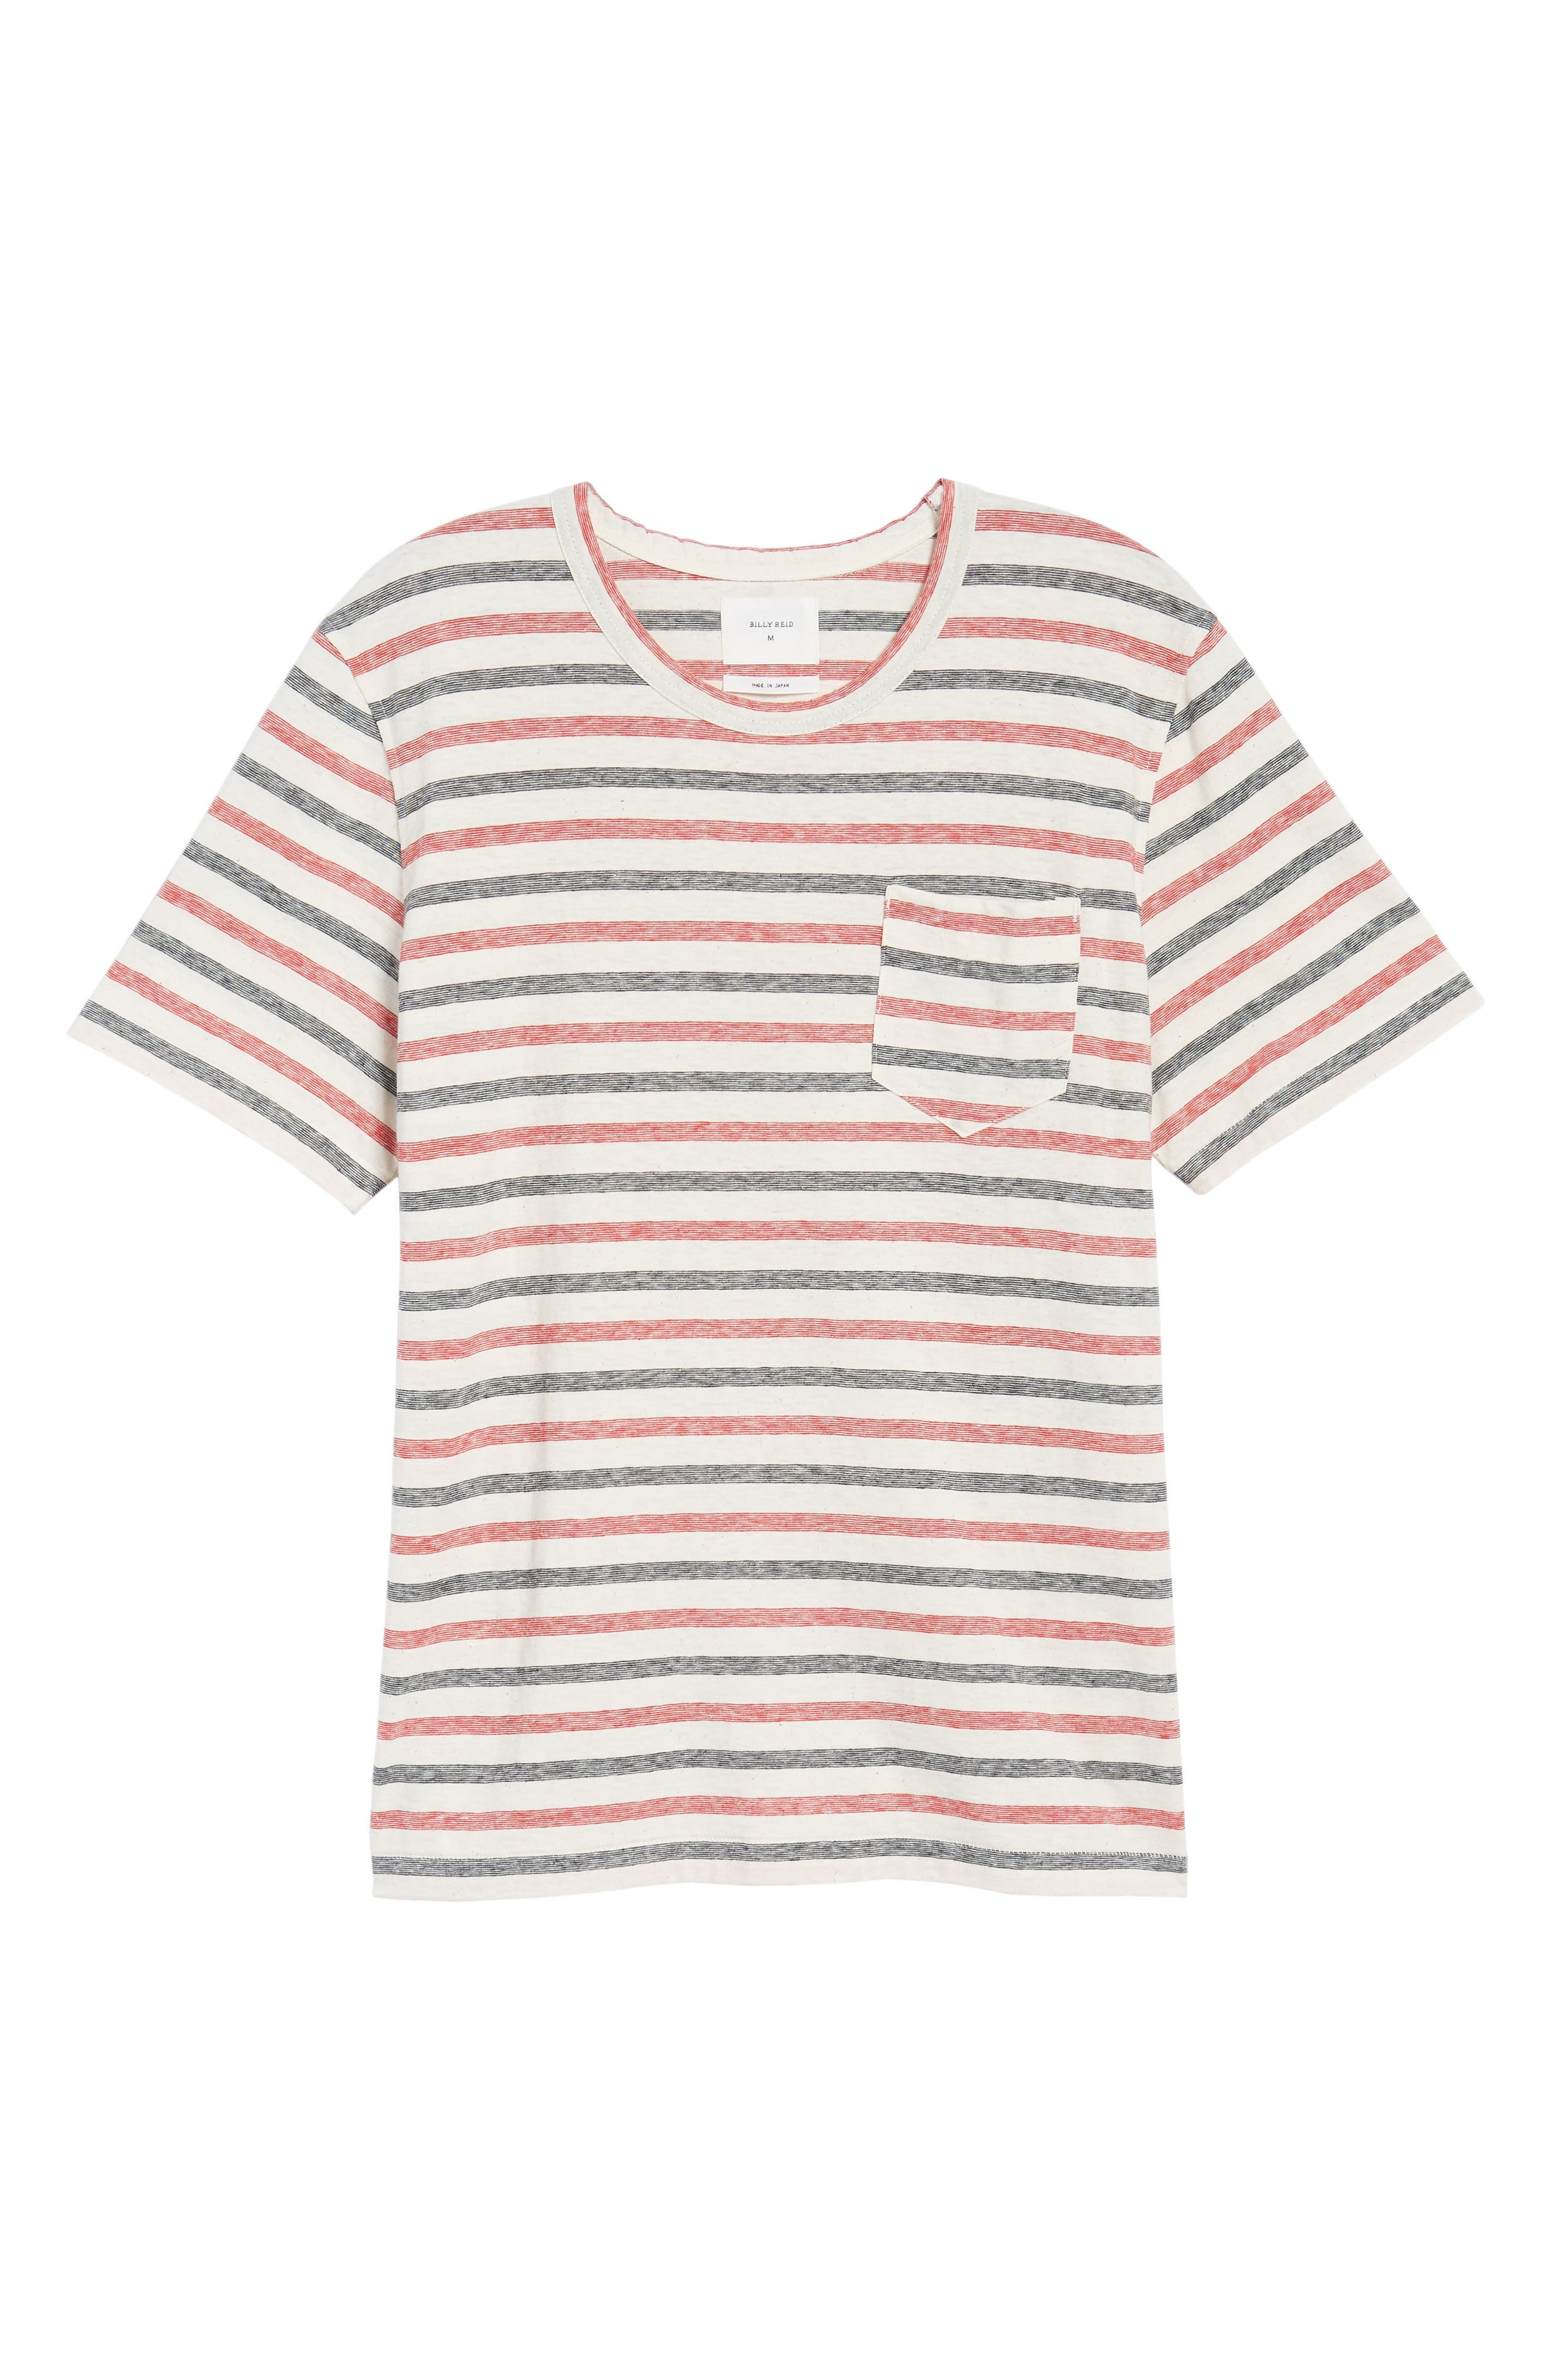 Striped T-Shirt,                             Alternate thumbnail 6, color,                             Red